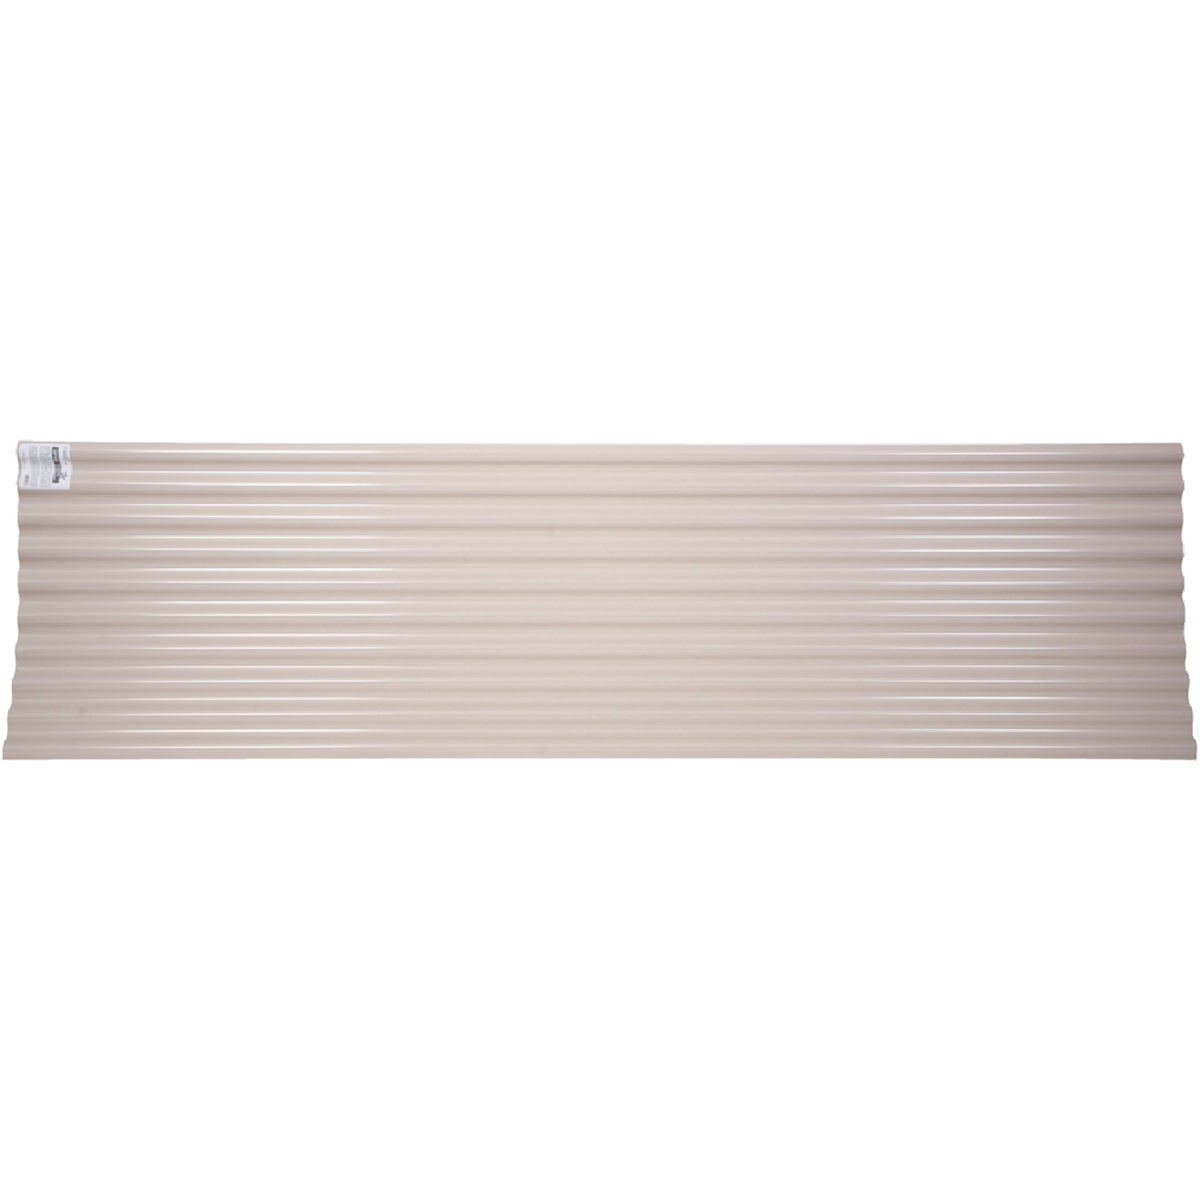 12' TAN CORGTD PVC PANEL - 120832 by Ofic North America